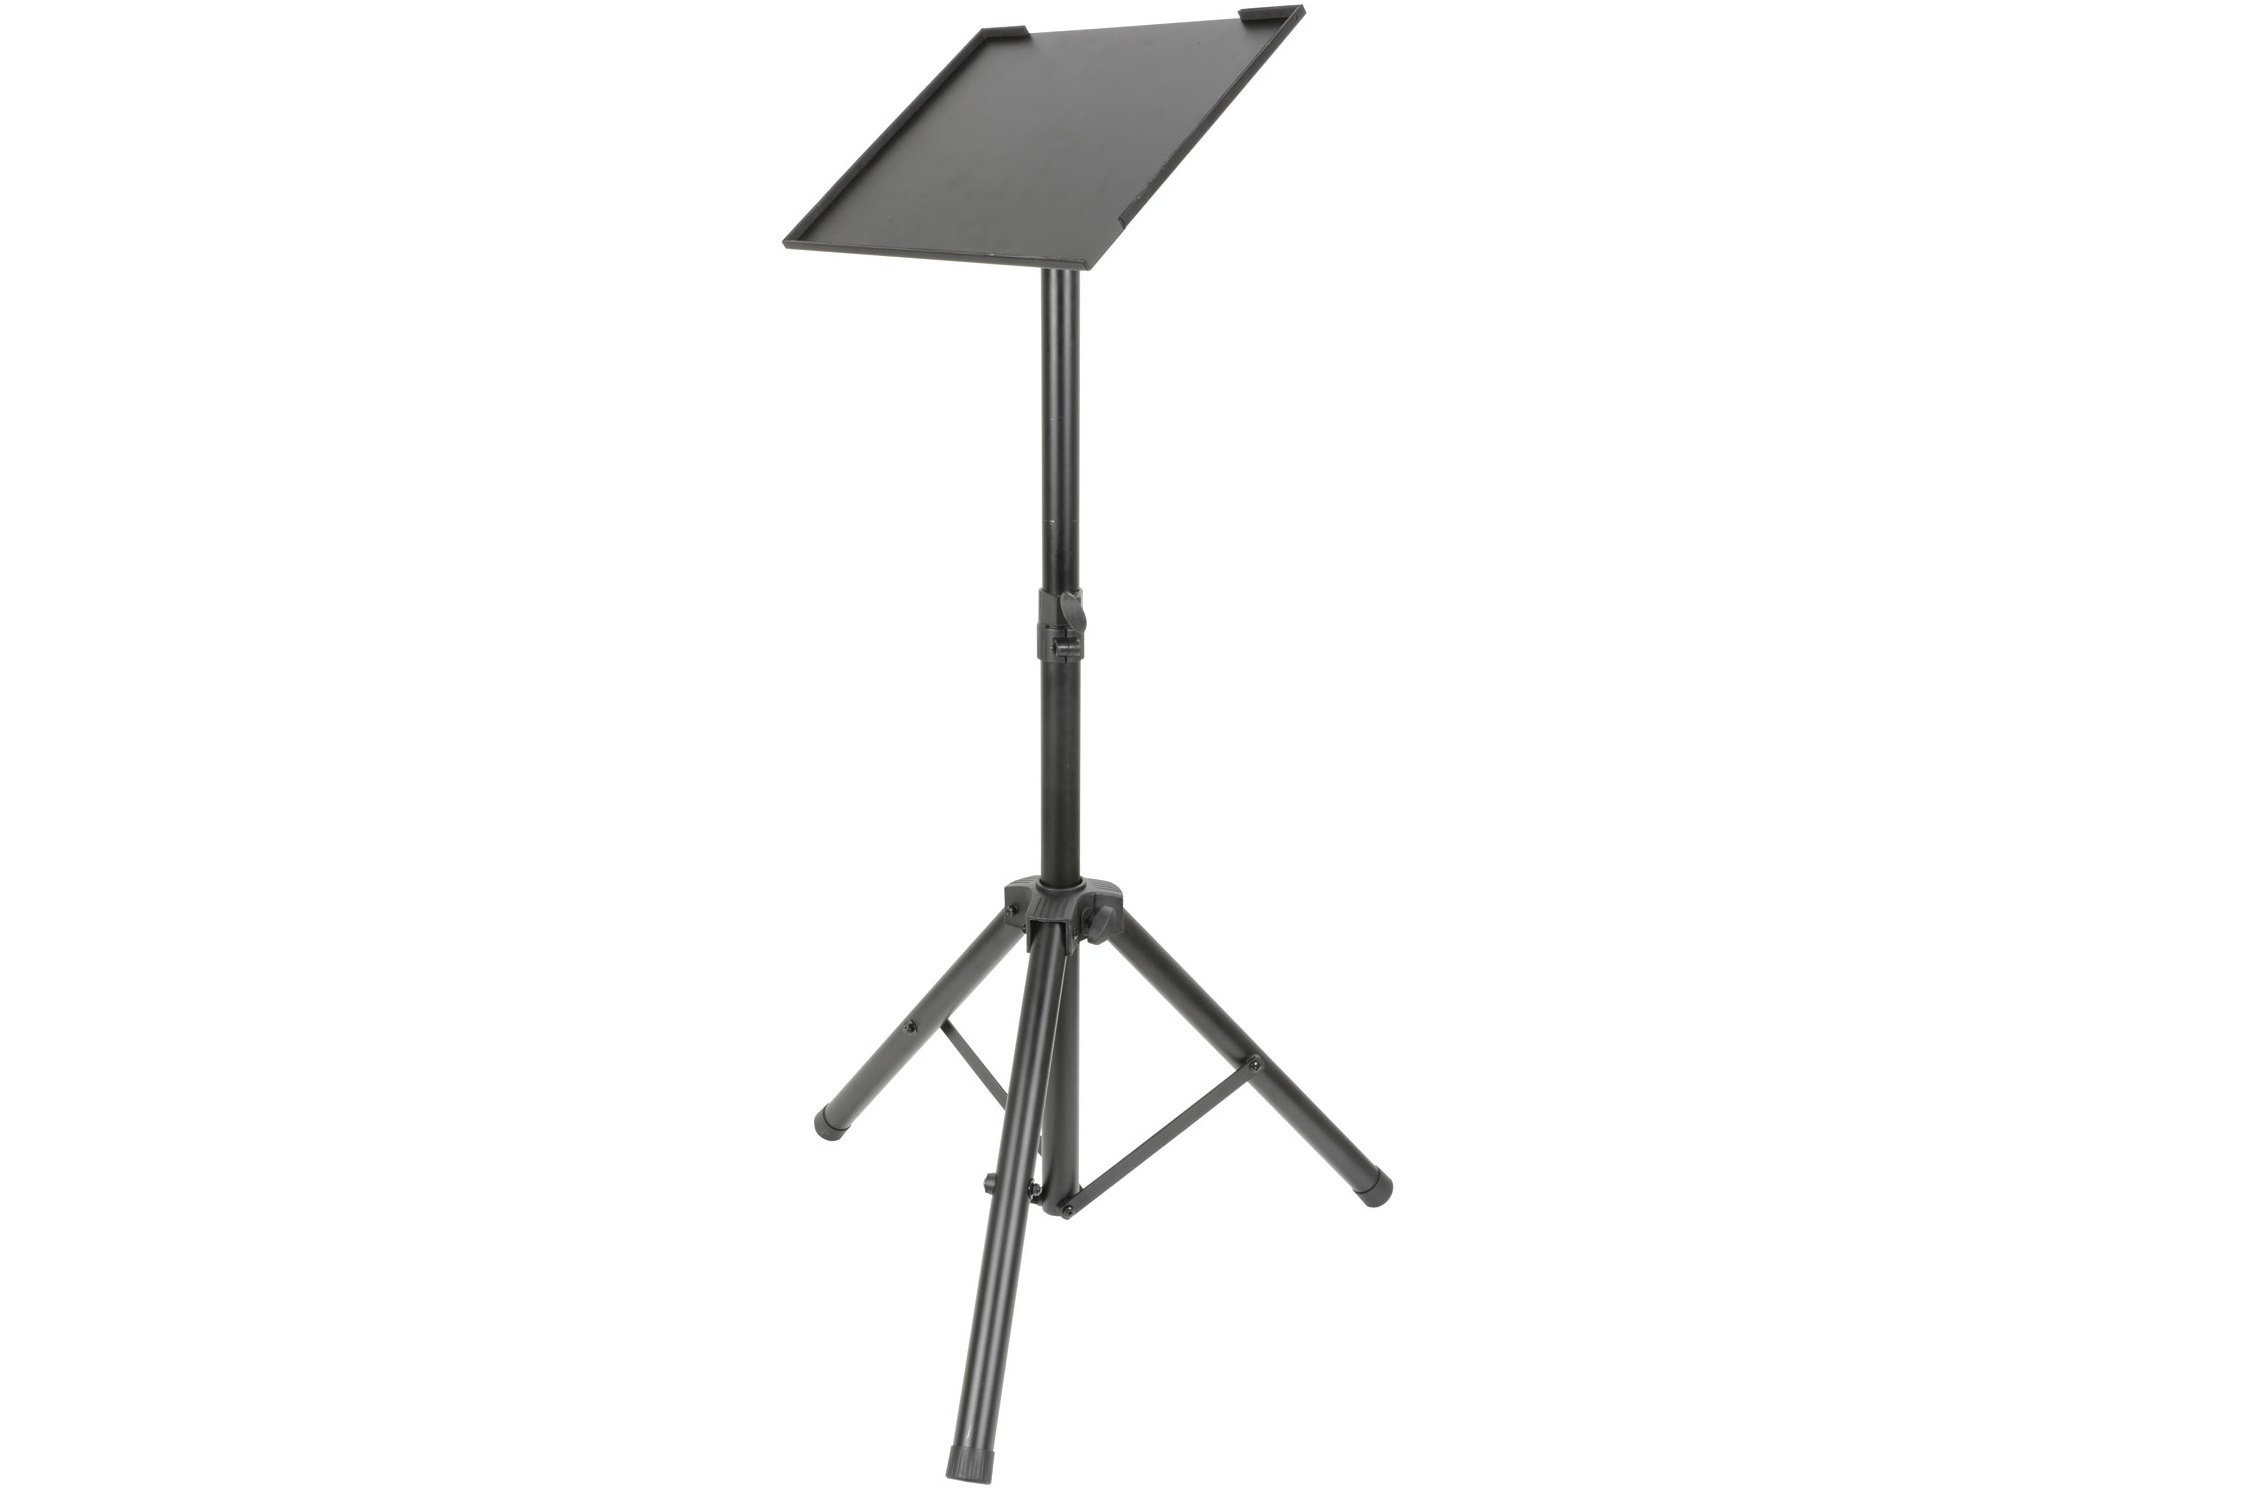 laptop stand for presenting